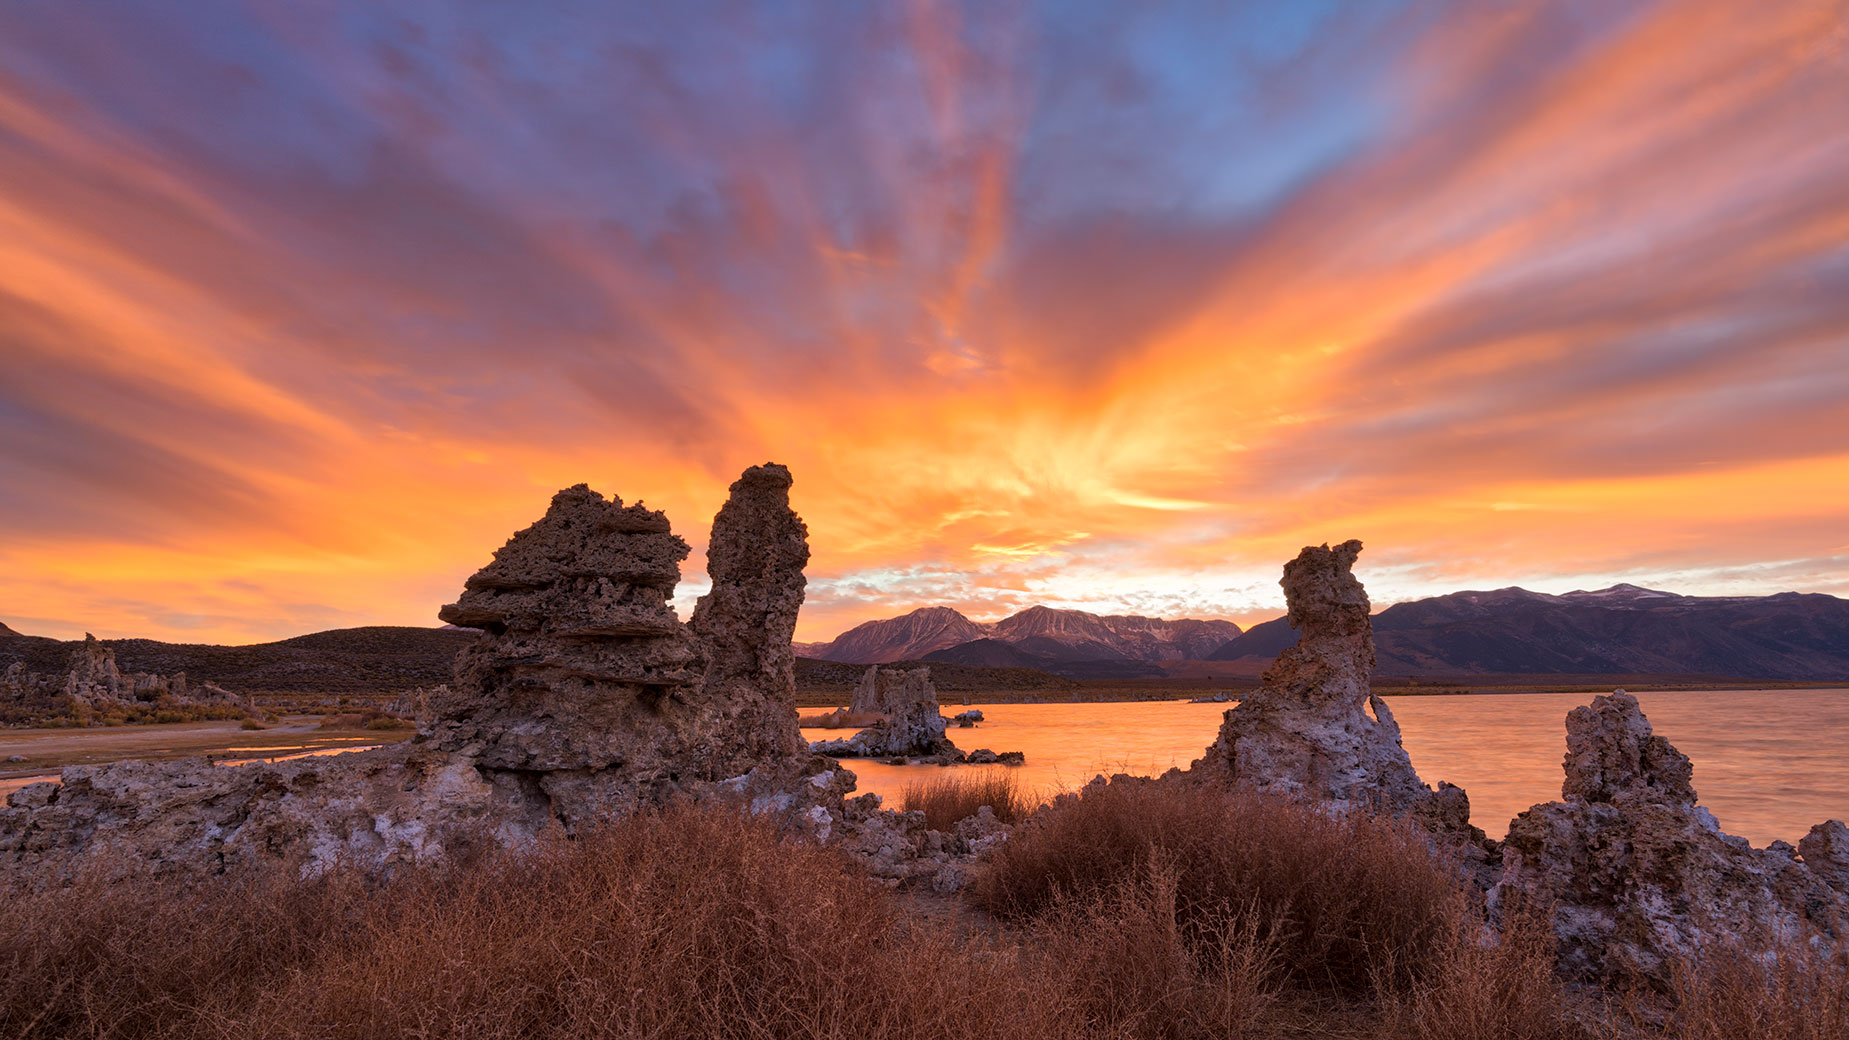 monolake_sunset-1